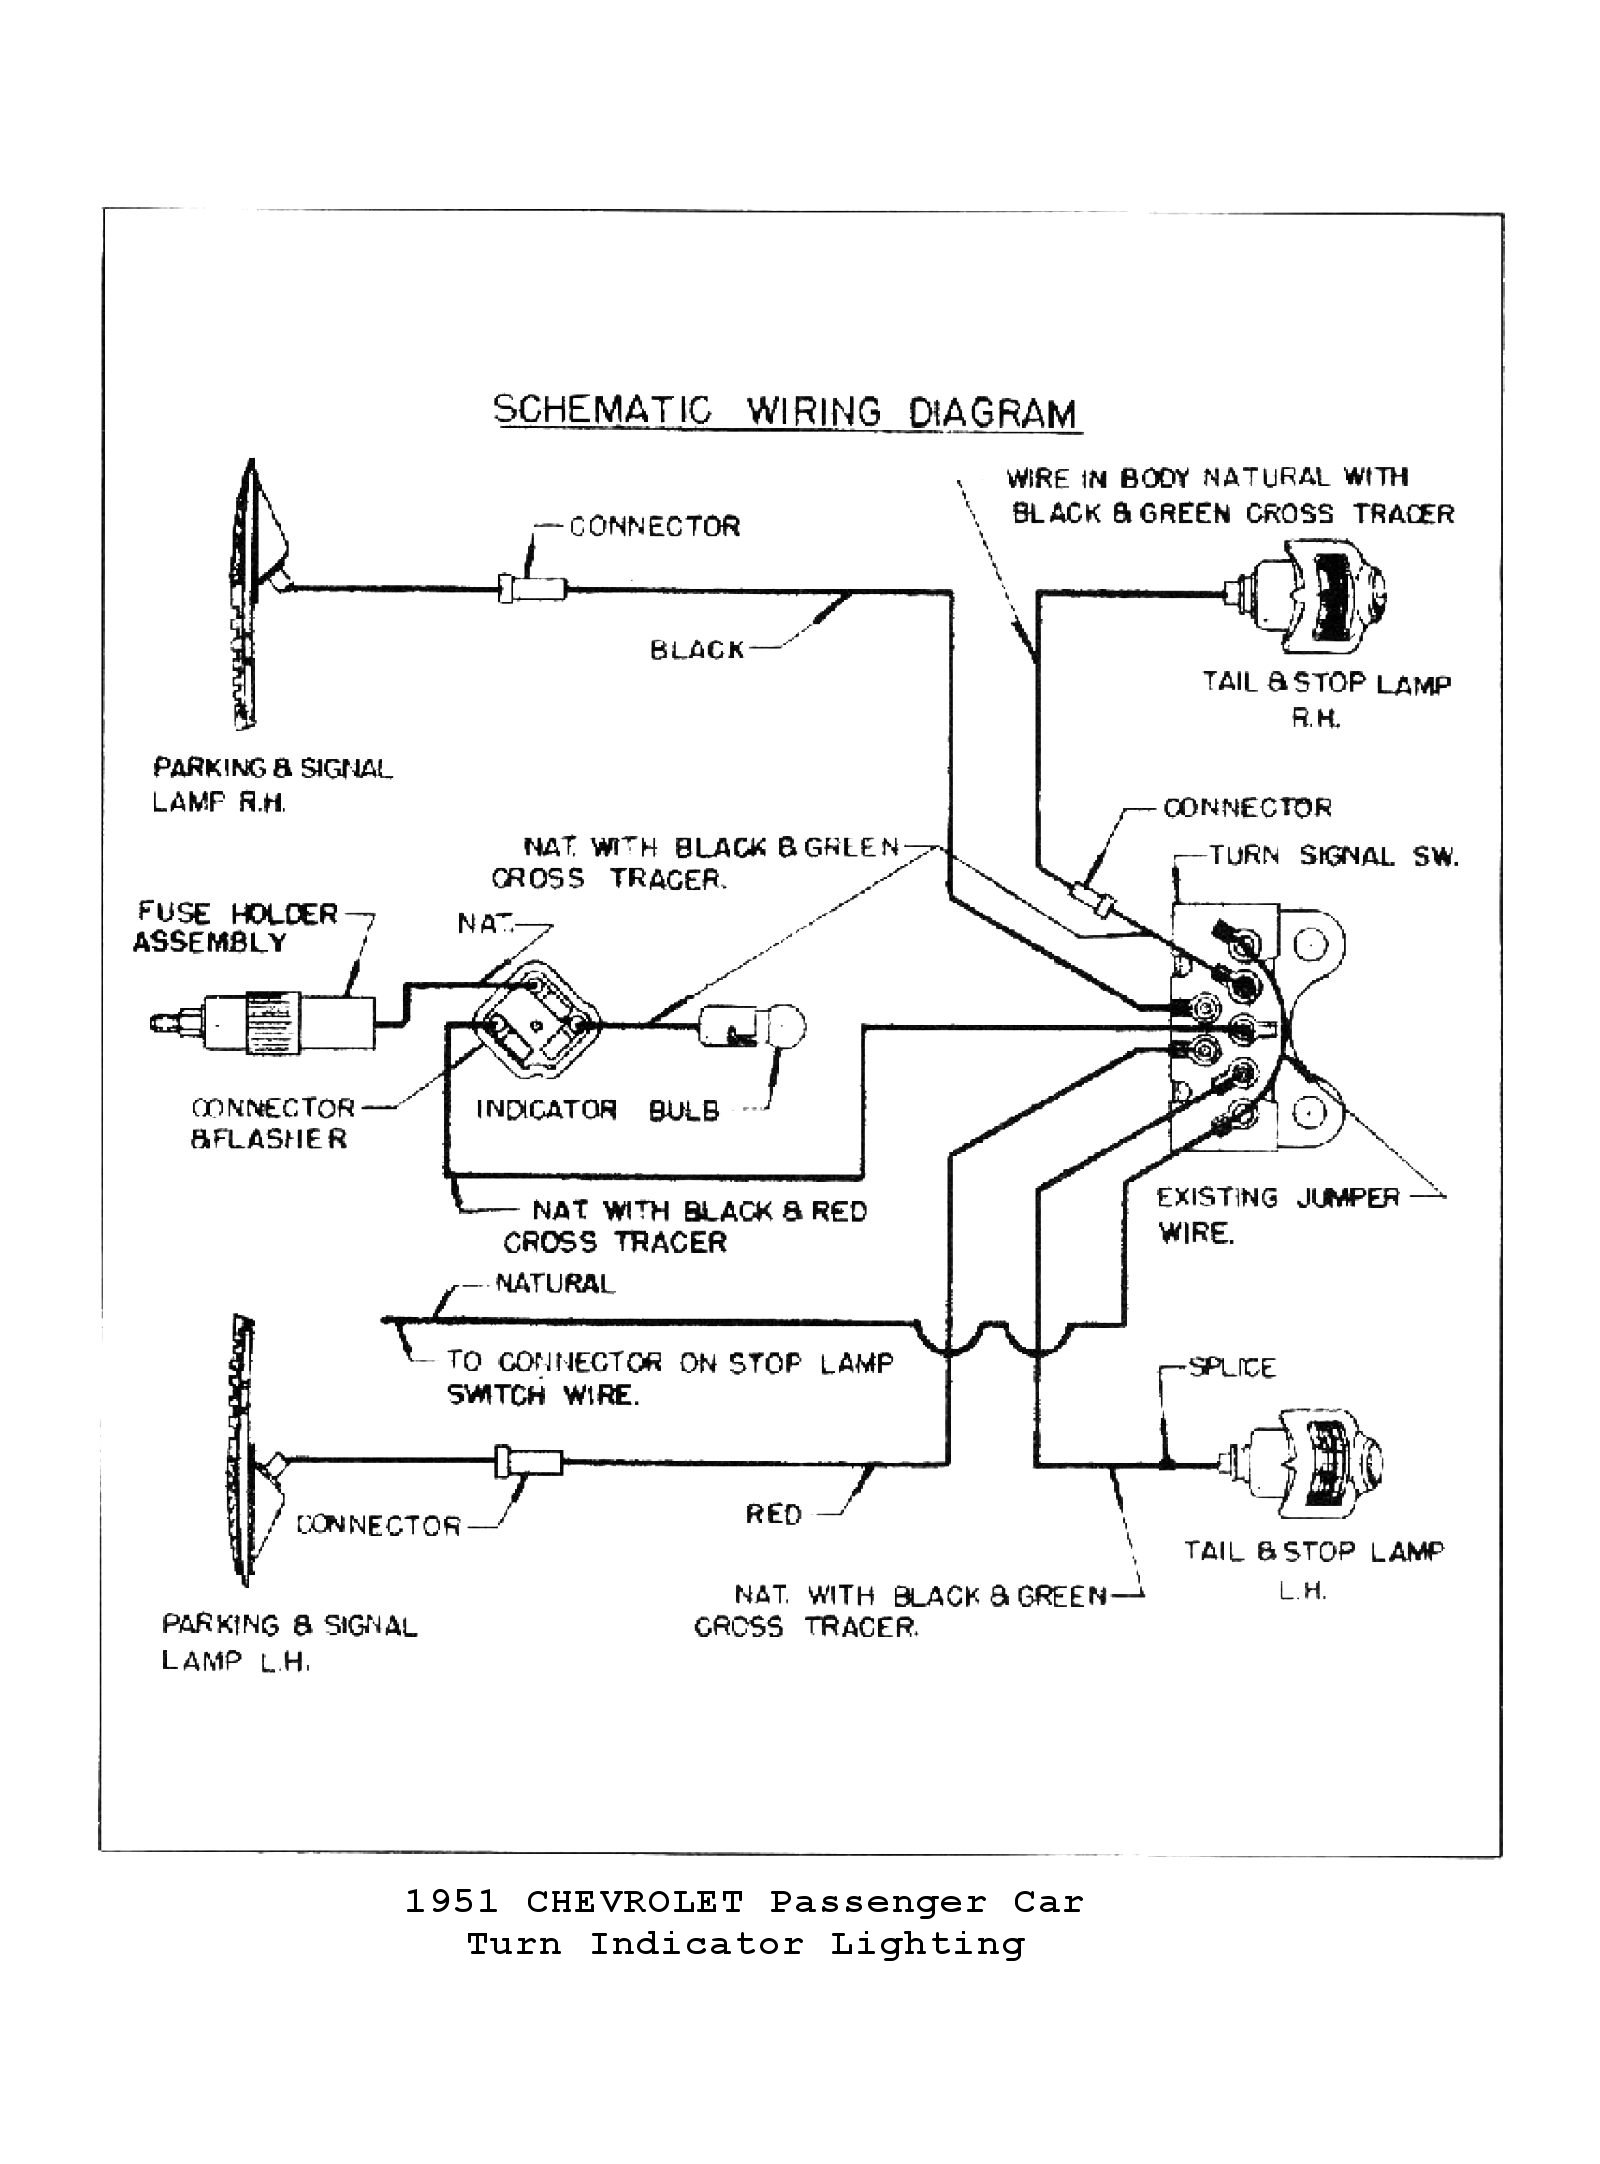 hight resolution of 1959 gmc truck headlight switch wiring wiring diagram article reviewchevy wiring diagrams 1959 gmc truck headlight